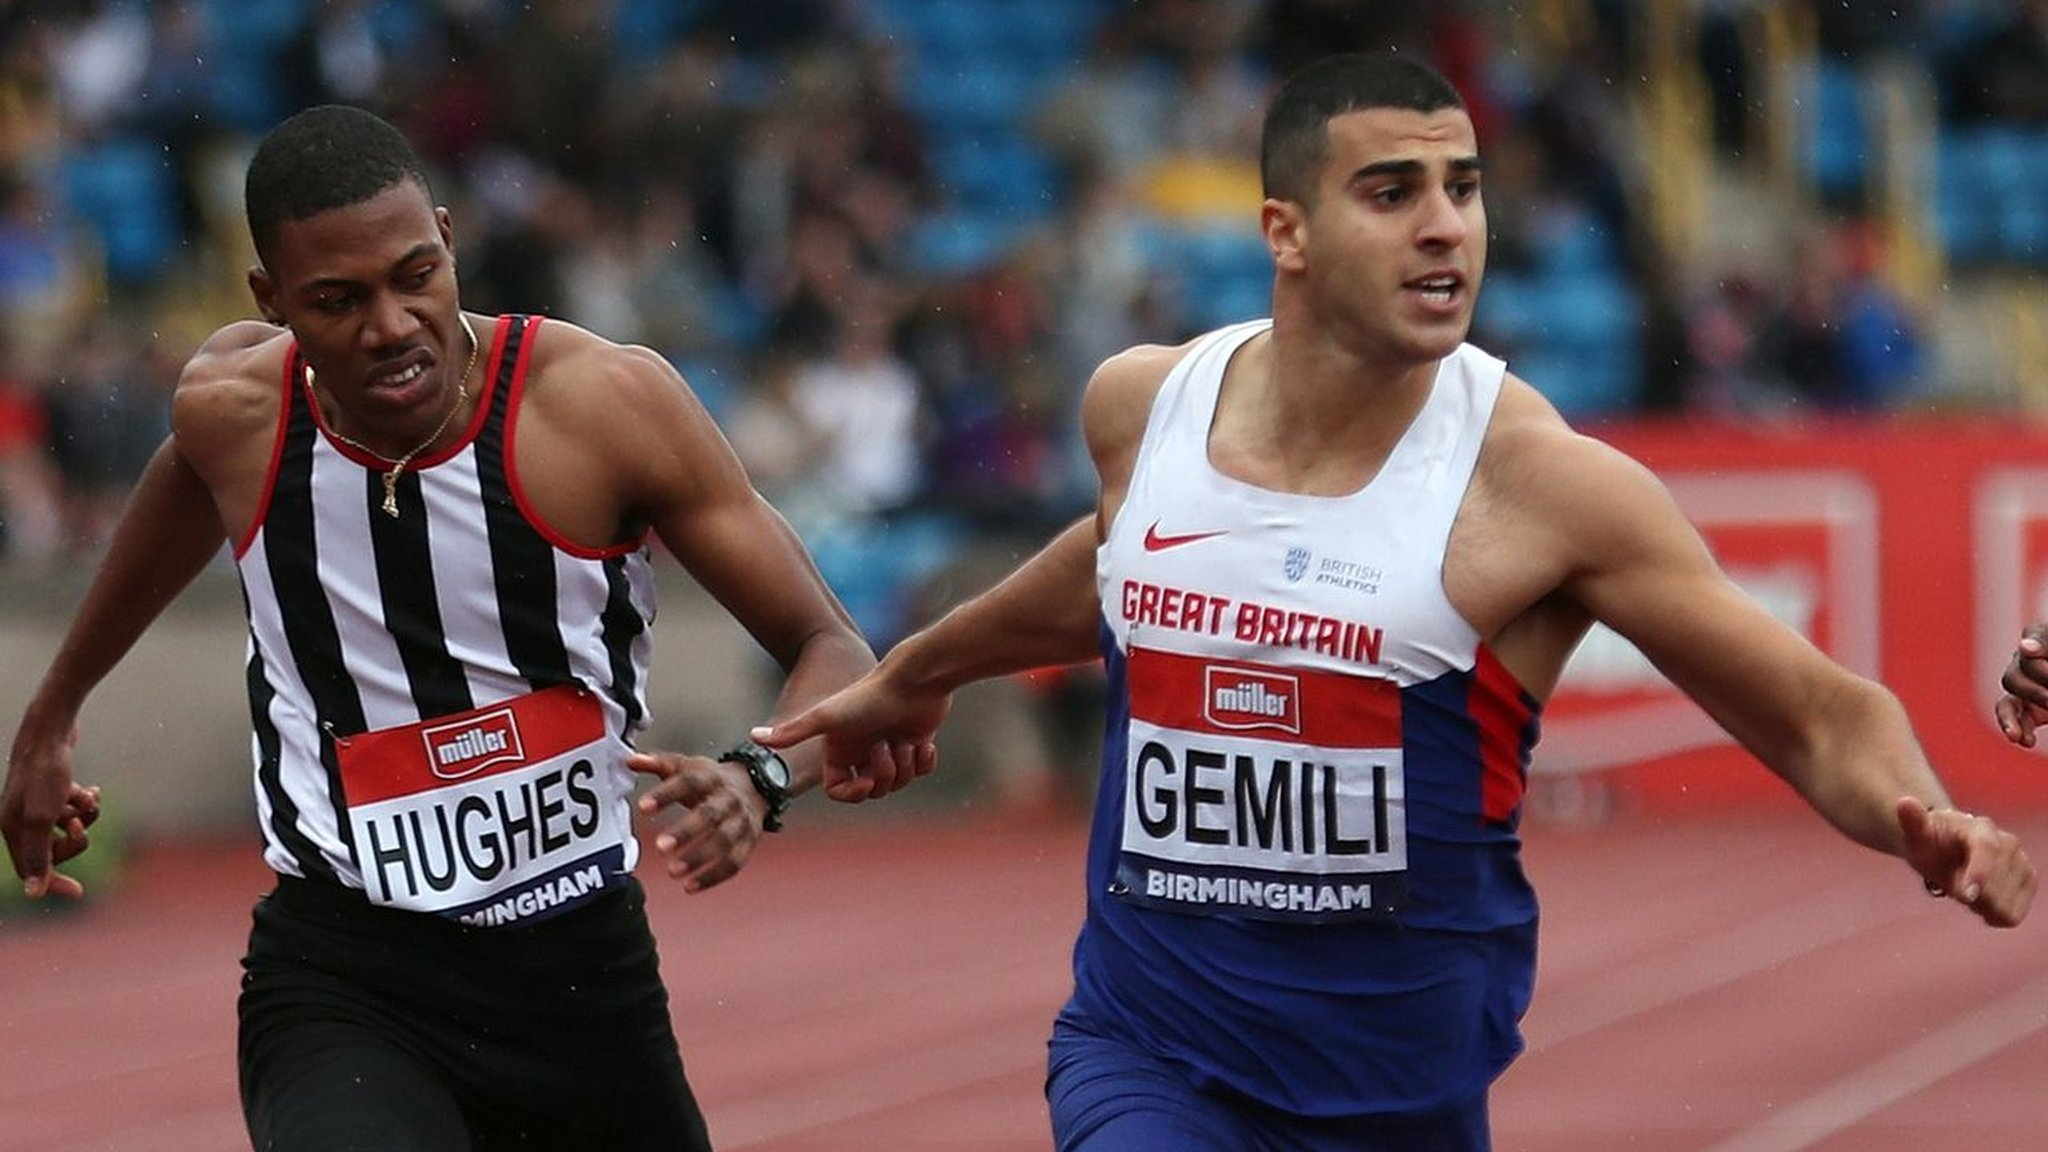 British Championships: Adam Gemili wins 200m and secures Olympic spot